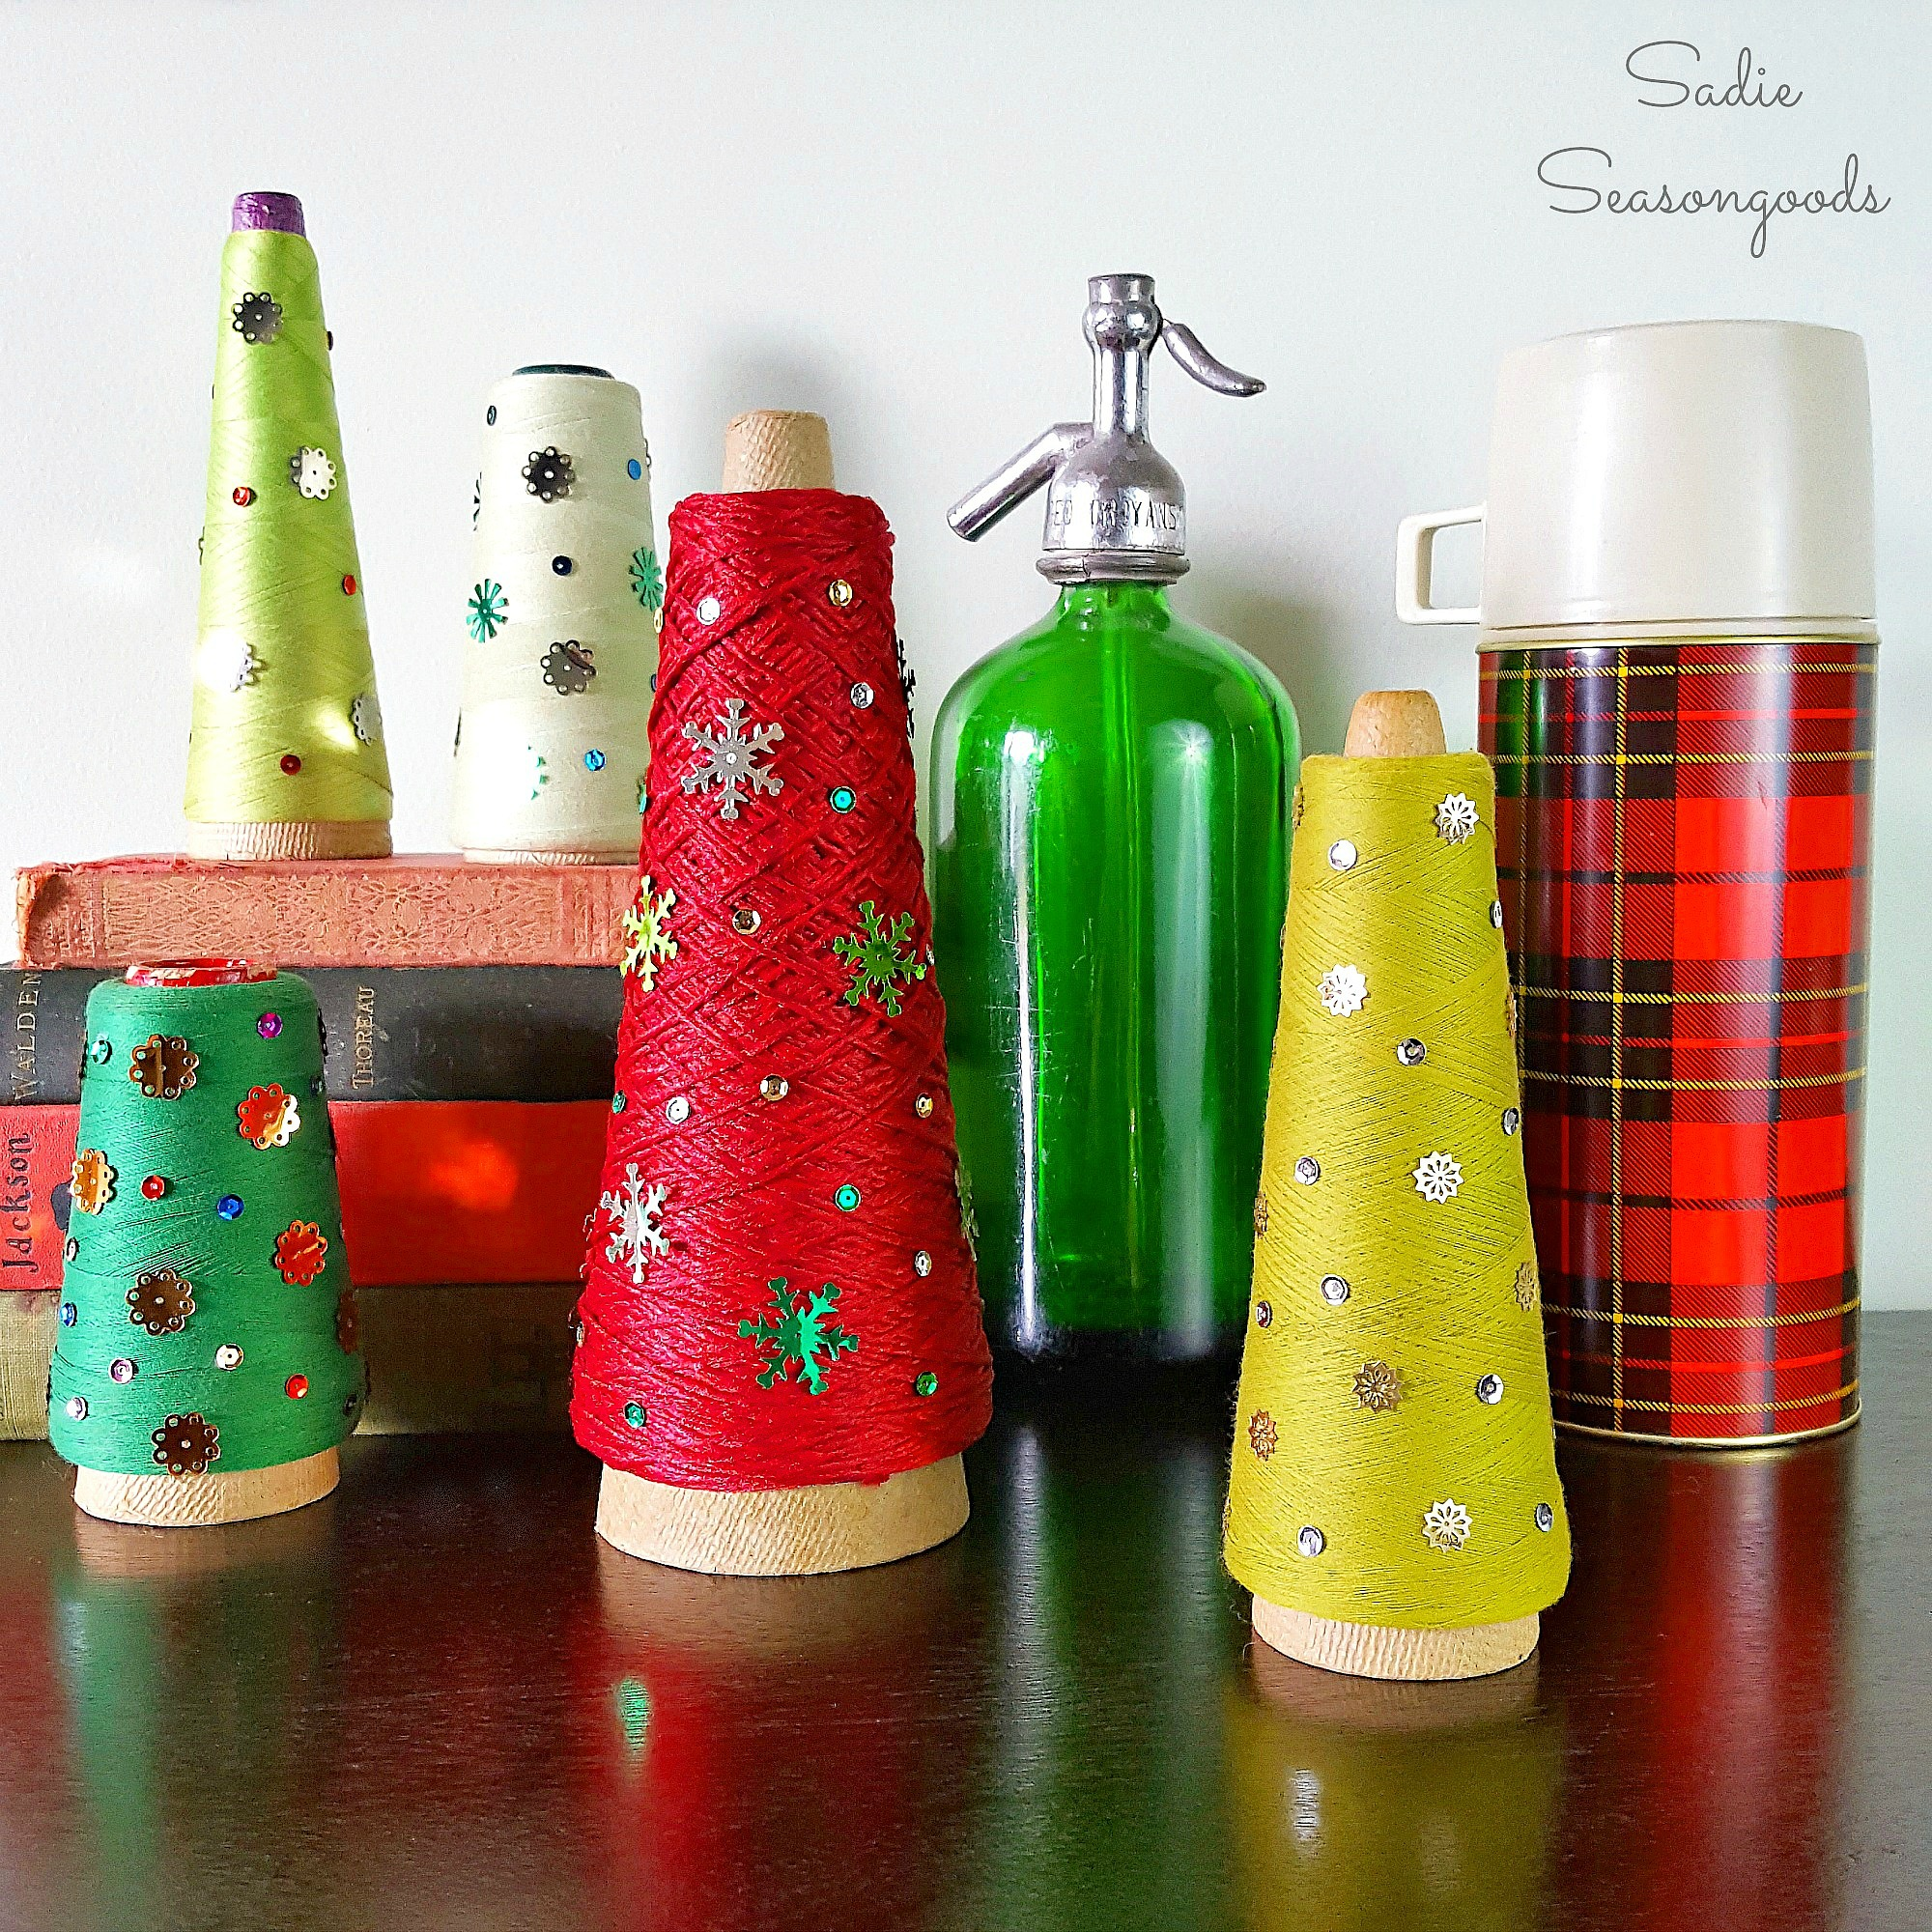 Vintage Industrial Serger Cone Christmas Trees from Sadie Seasongoods